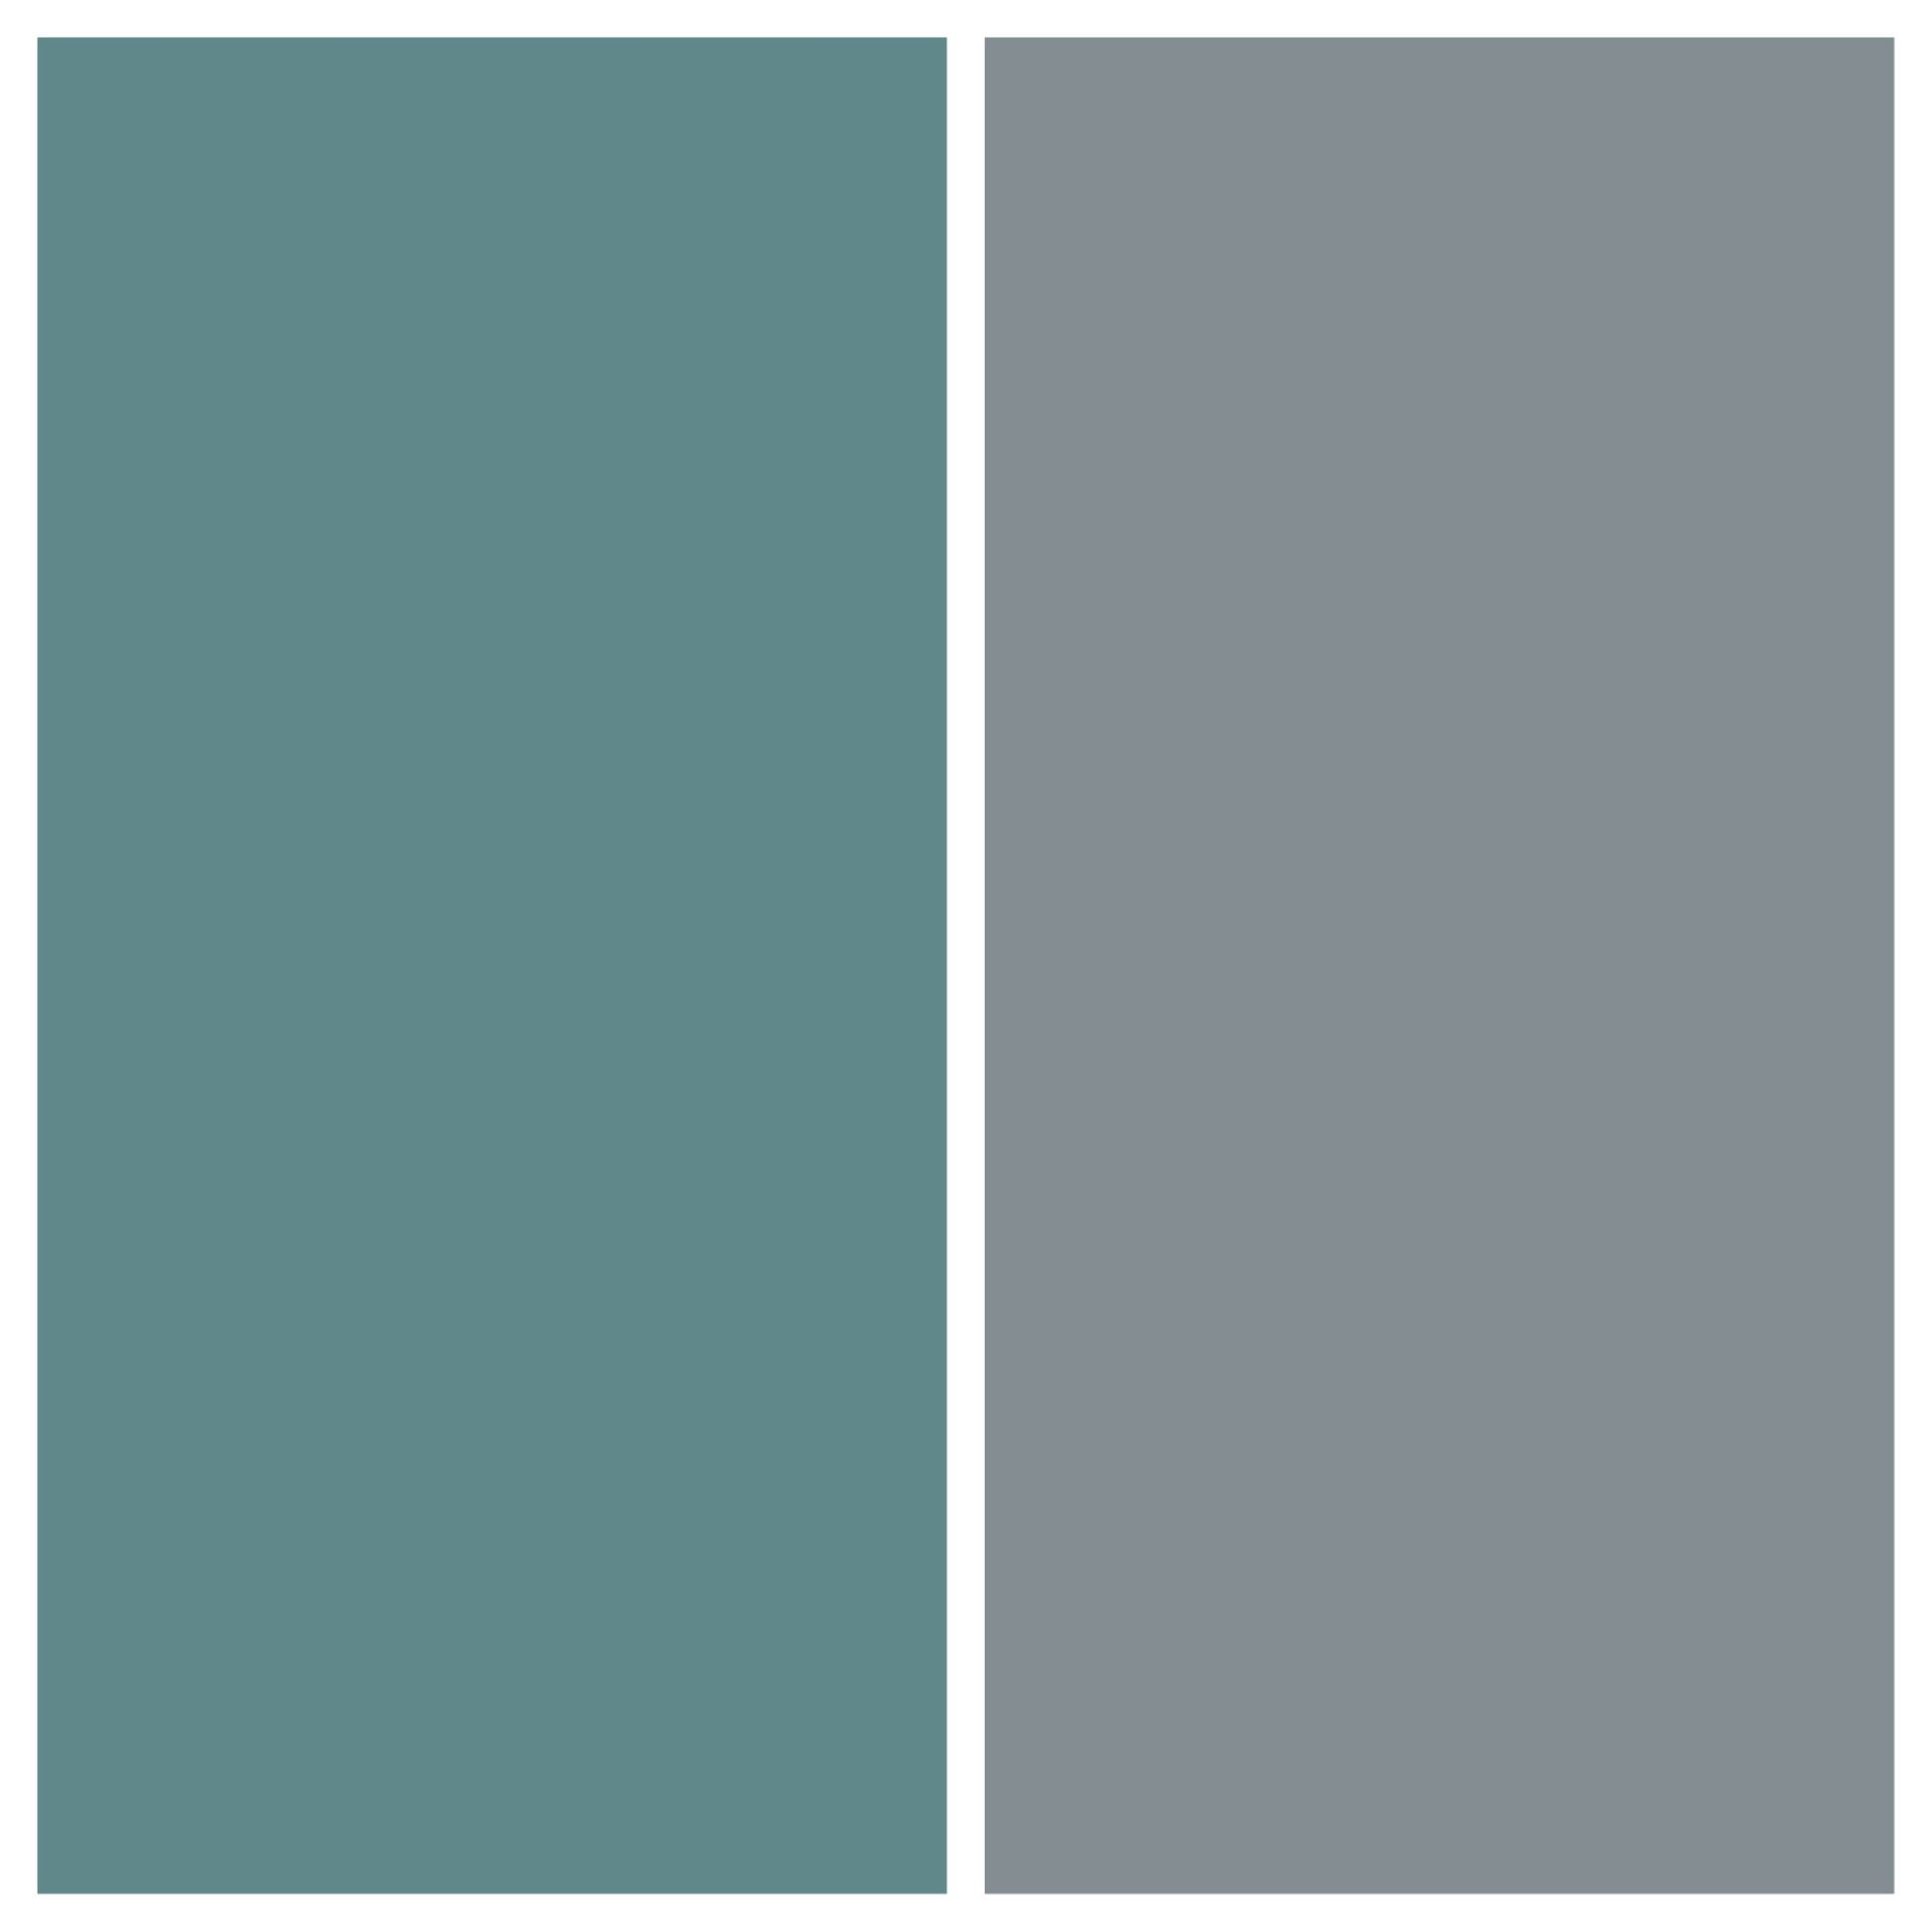 grey walls, with grey green accent wall. colors: lost atlantis